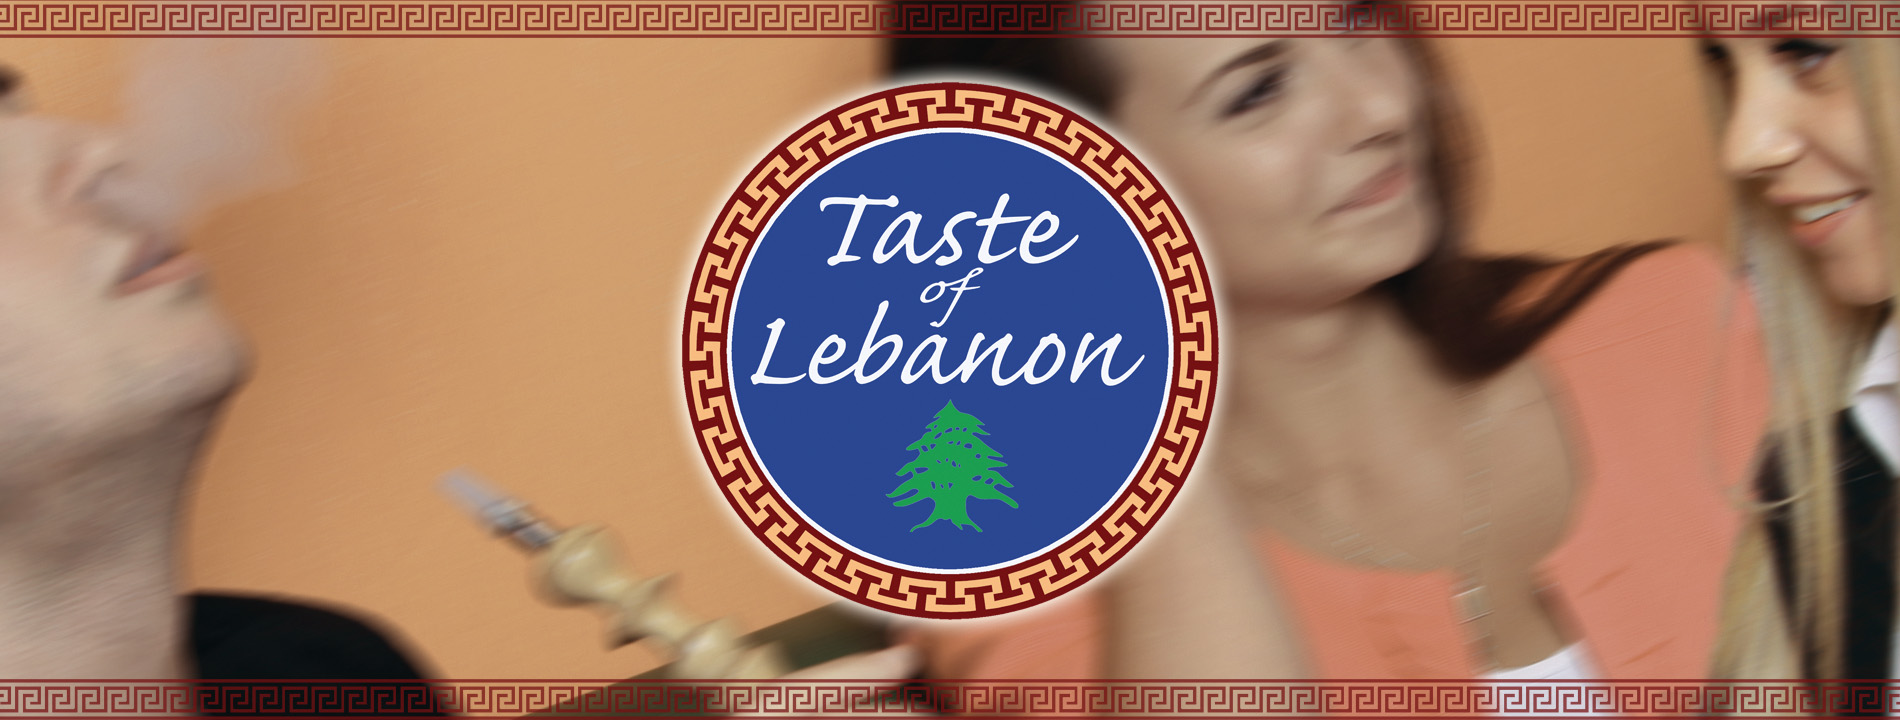 taste-of-lebanon